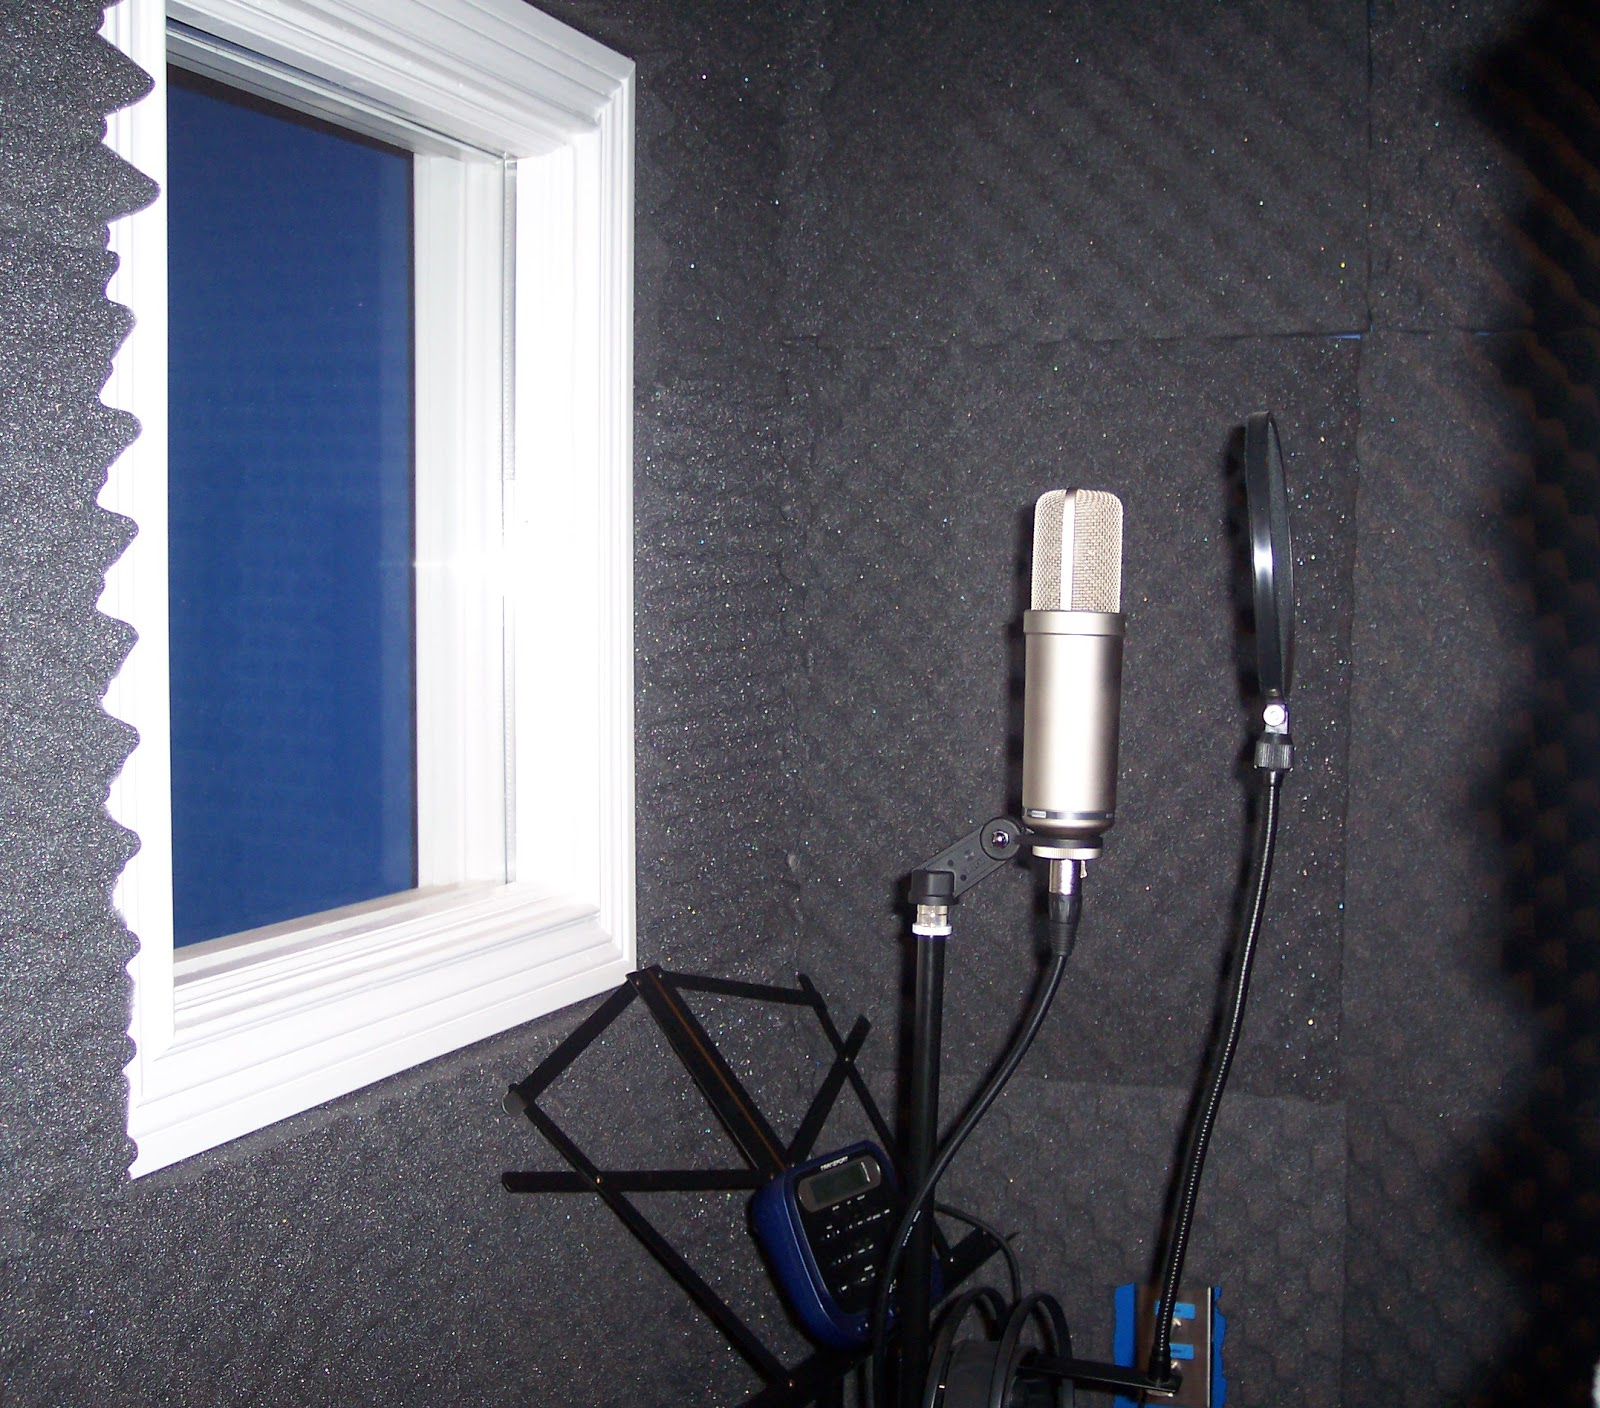 booth vocal booth veneers pic. Black Bedroom Furniture Sets. Home Design Ideas